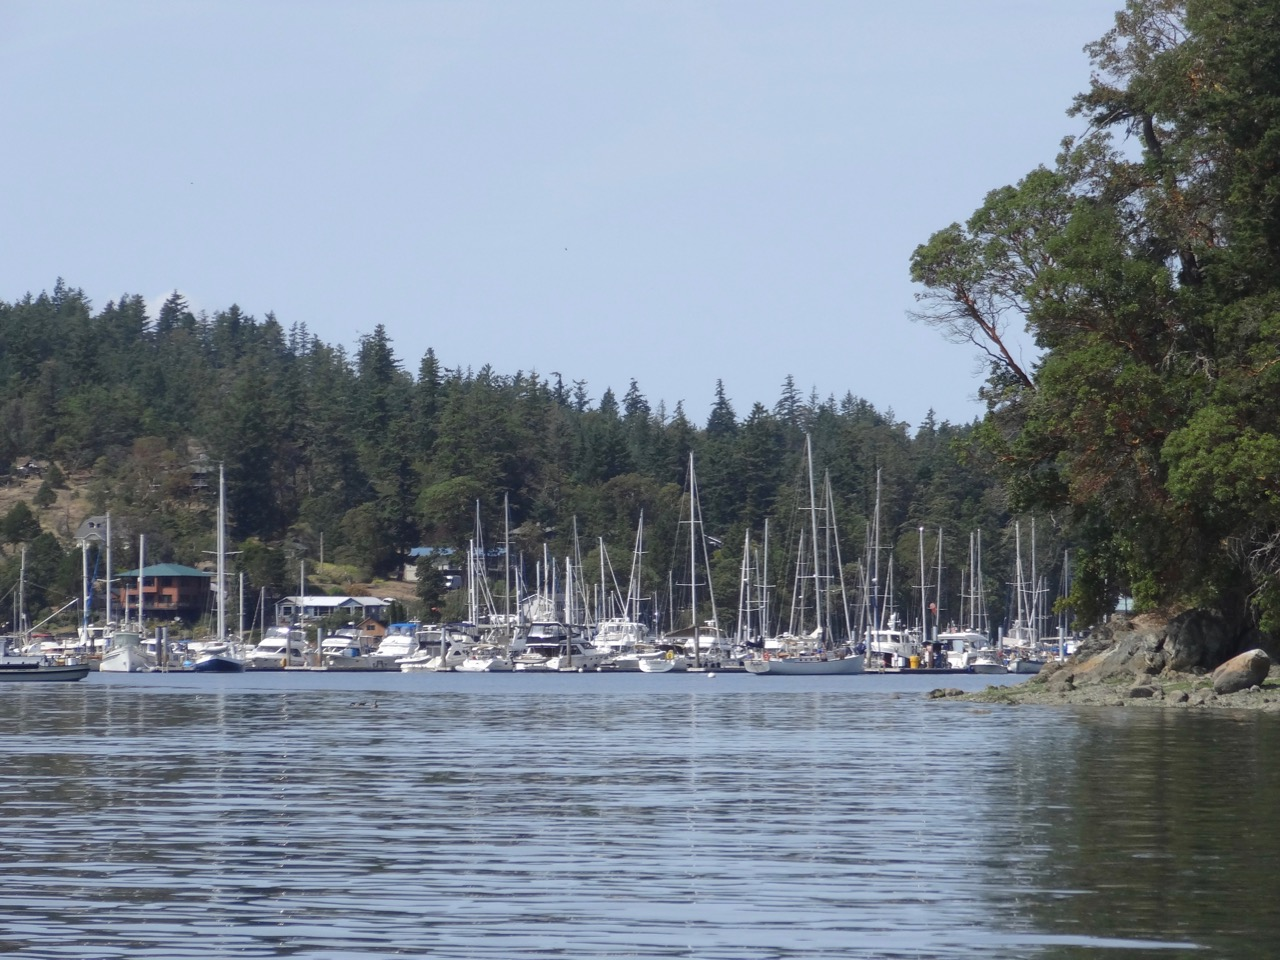 Approaching Deer Harbor from the south